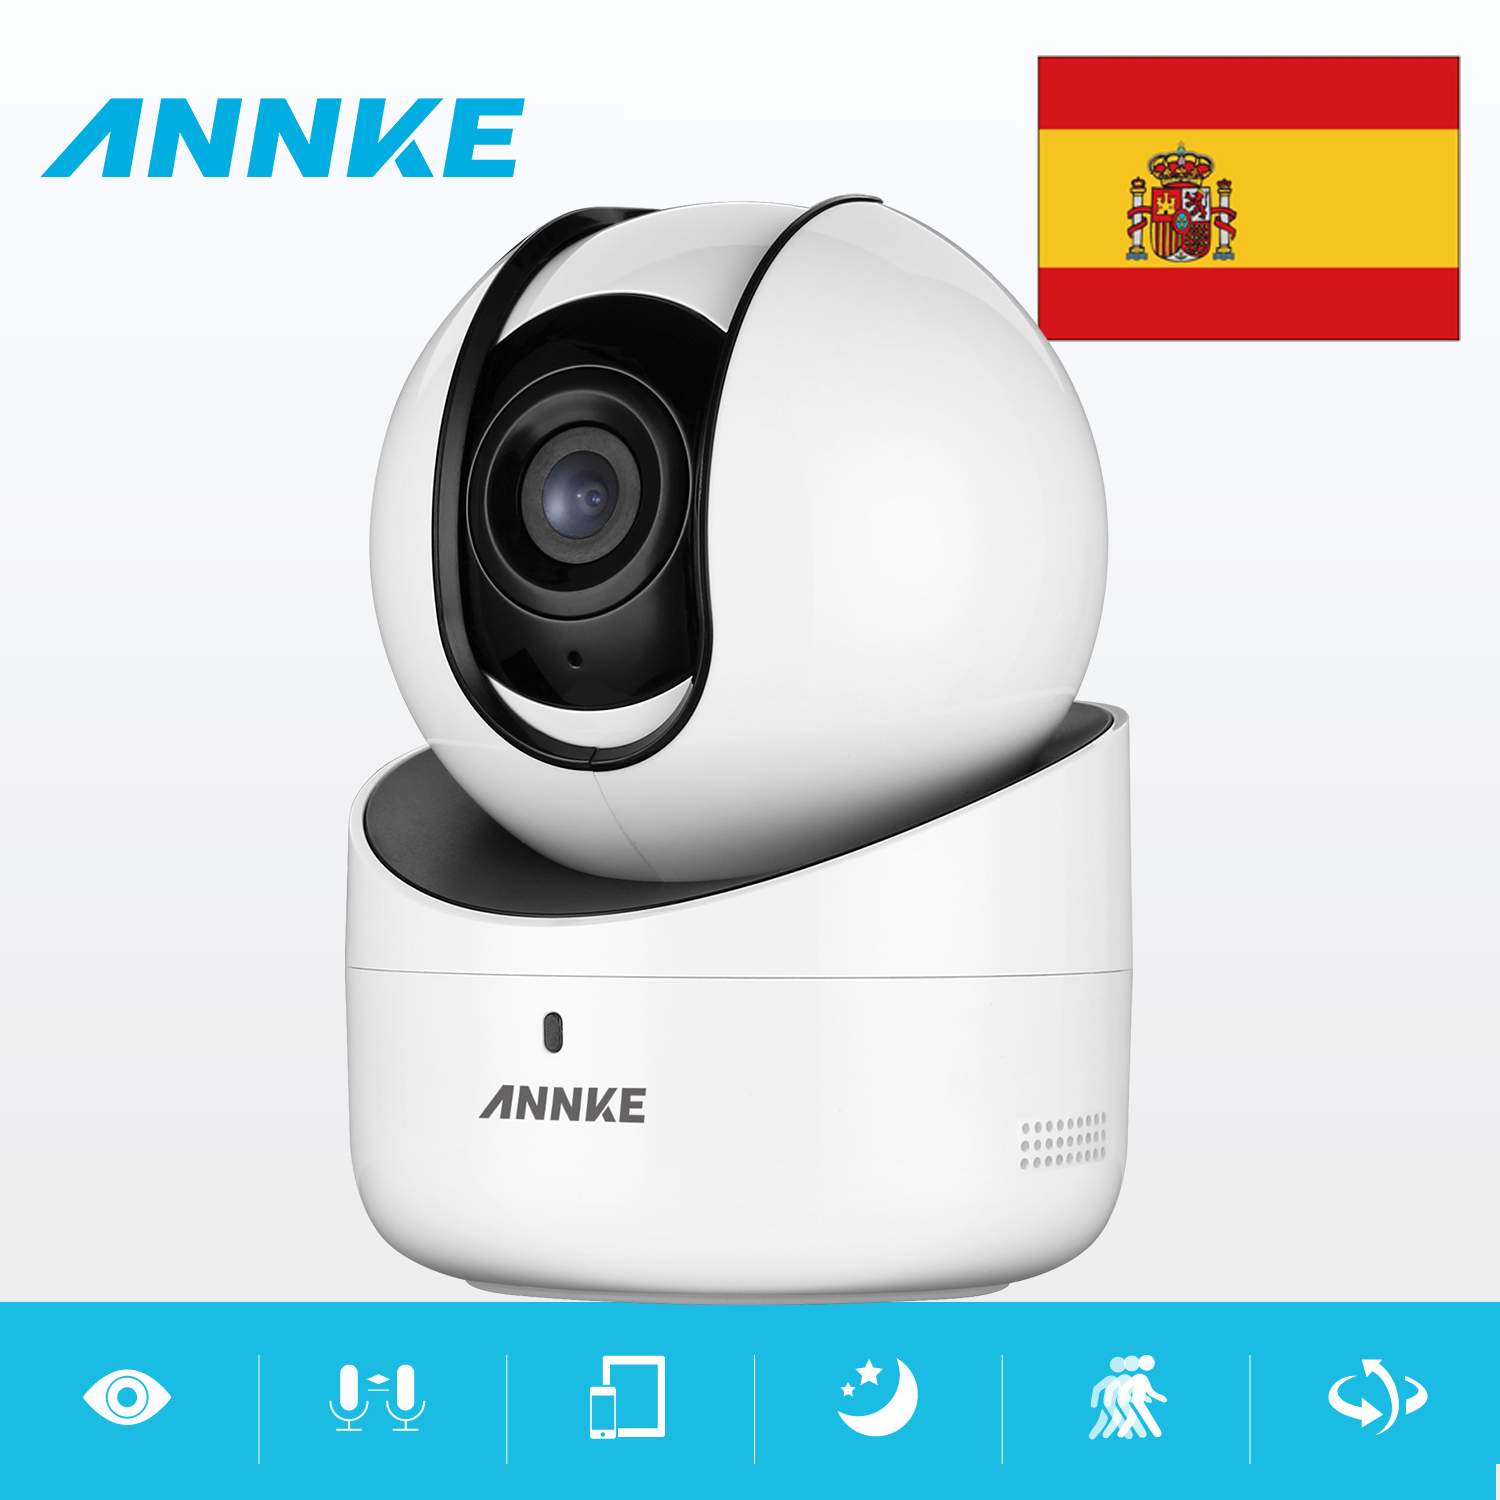 Clearance Sale For Spain : ANNKE 720P WiFi IP Camera Network Security IR CUT Motion Detecte Intelligent Alert WDR ROI 3D DNR